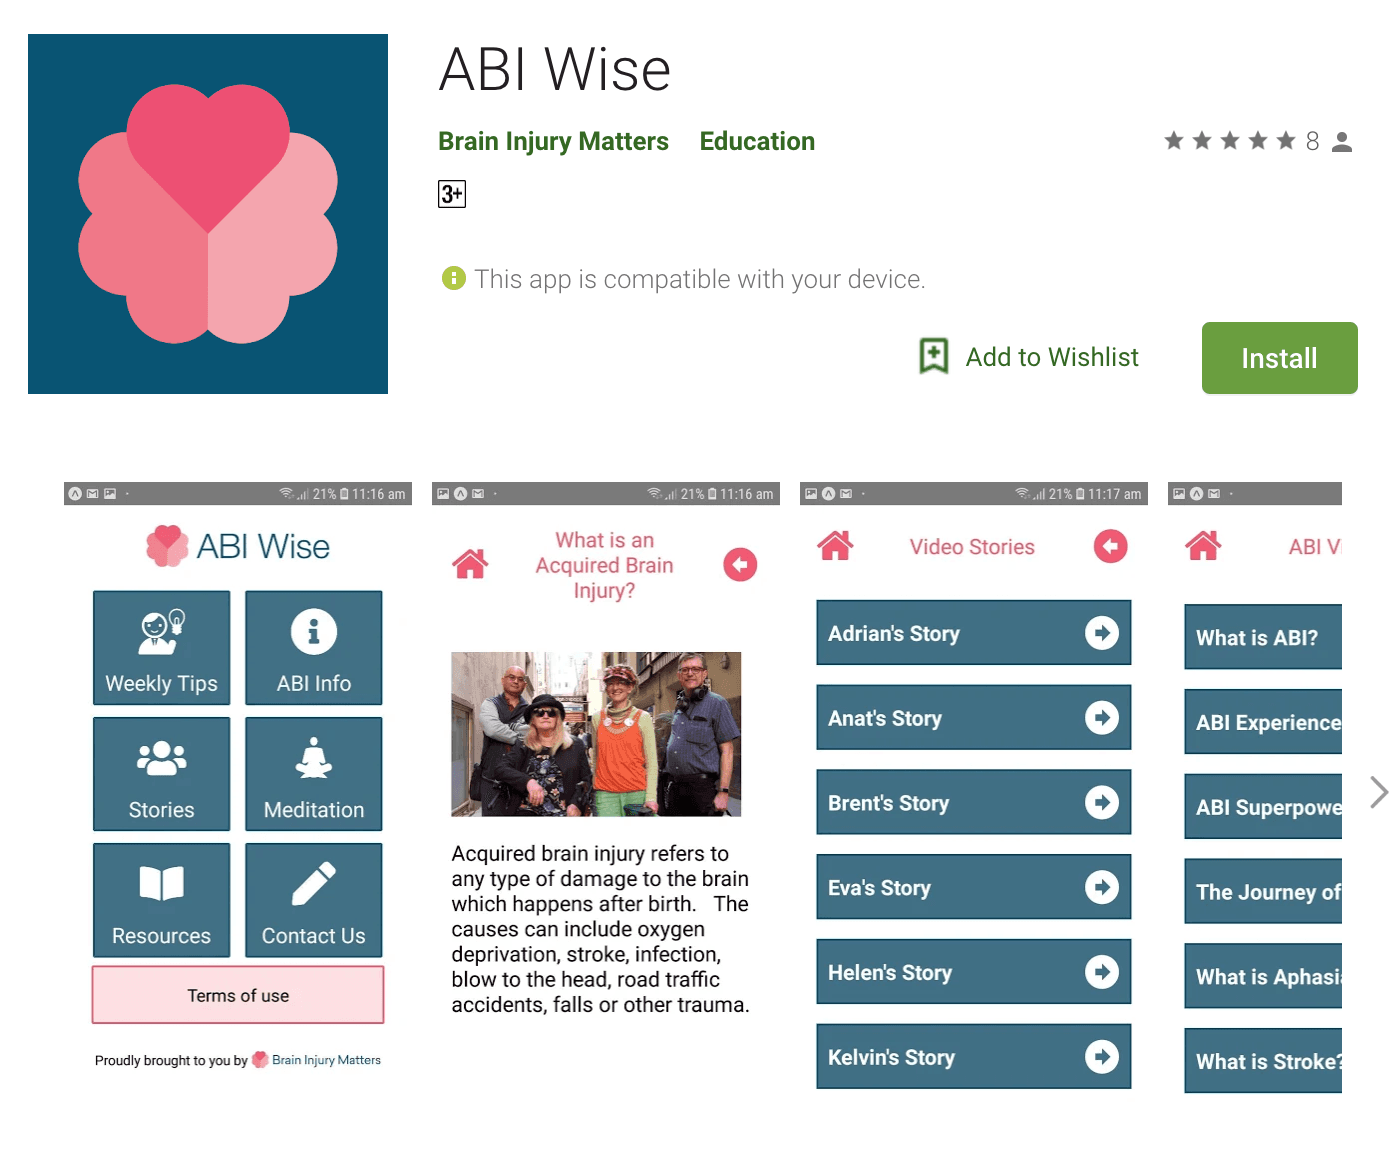 ABI Wise info on Google Play